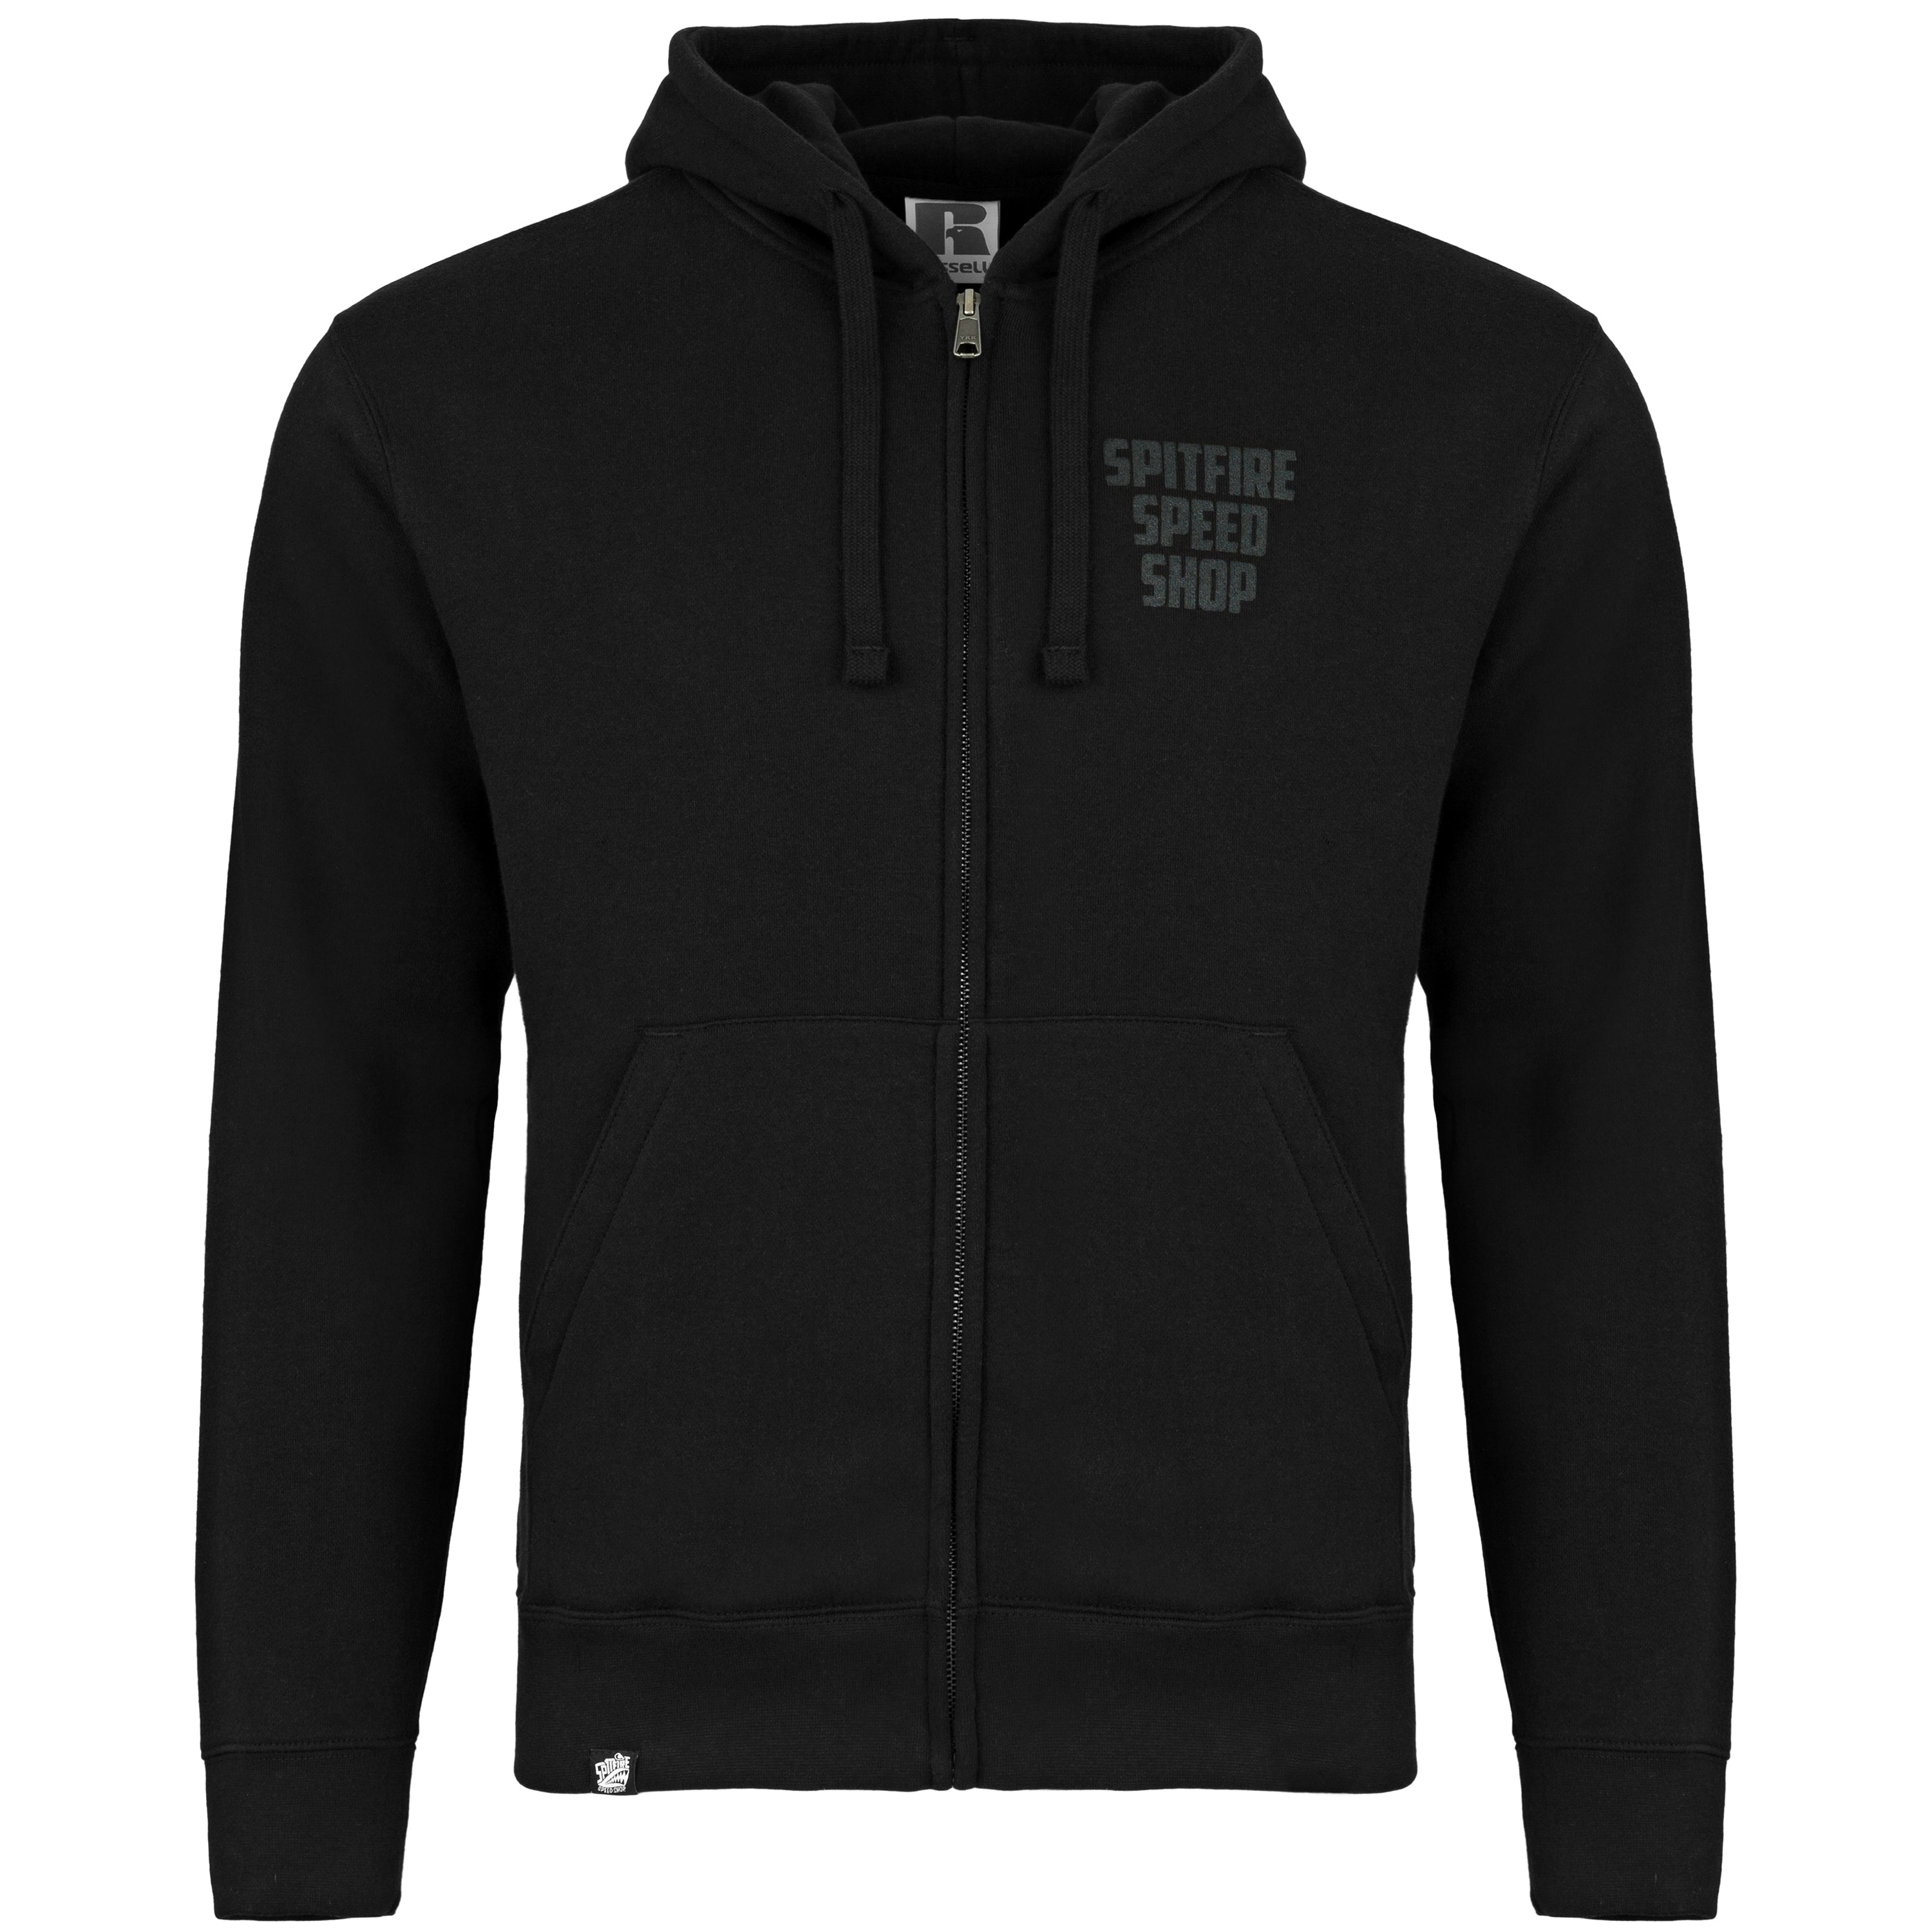 Spitfire Zipped Hoodie Black With Black Logo